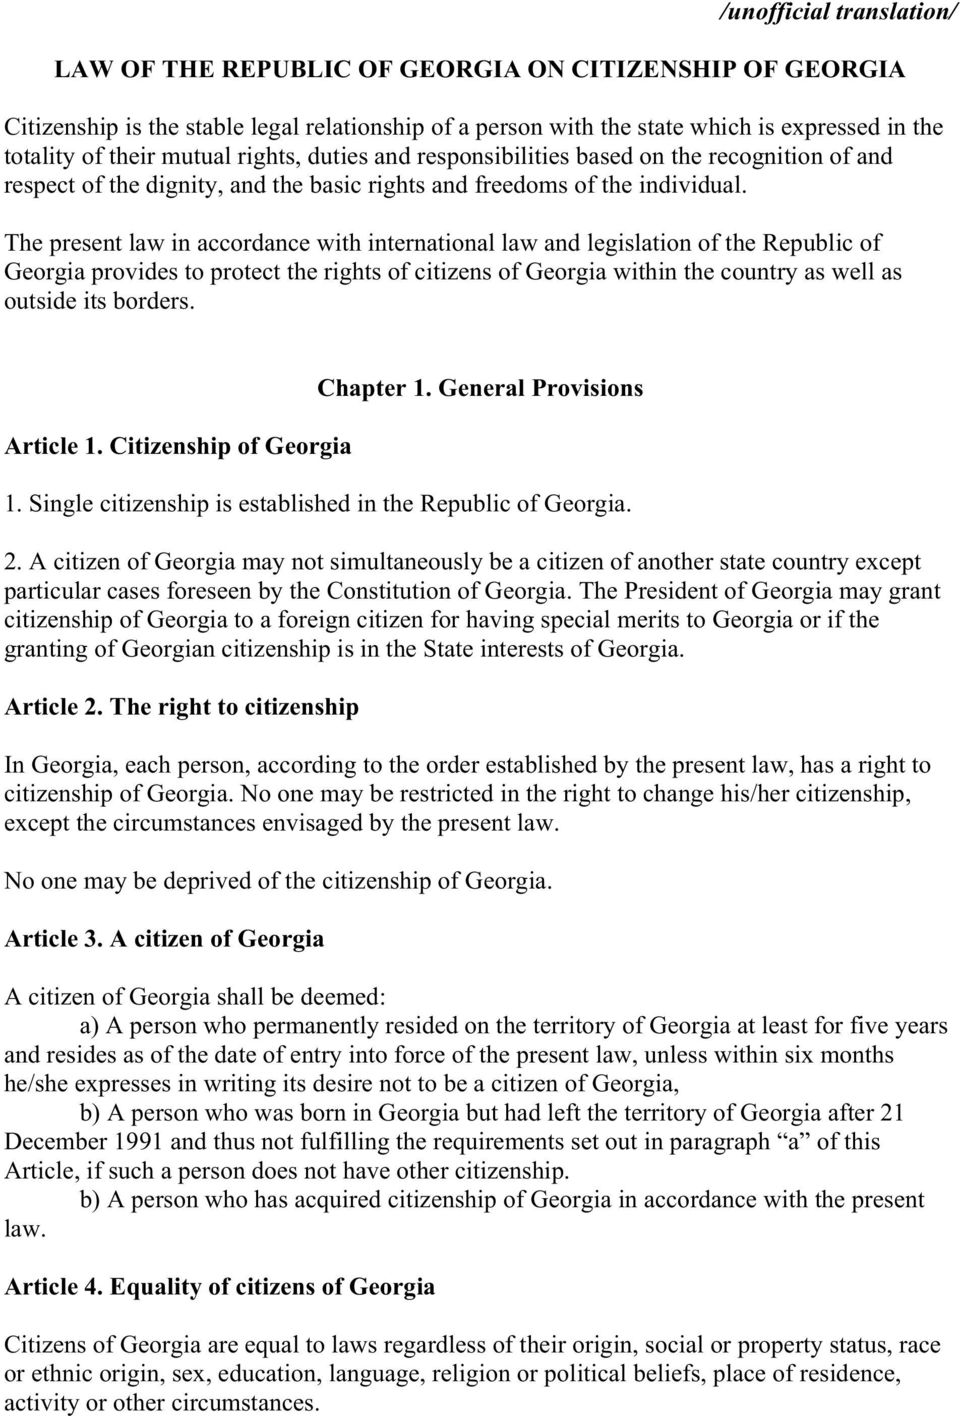 The present law in accordance with international law and legislation of the Republic of Georgia provides to protect the rights of citizens of Georgia within the country as well as outside its borders.